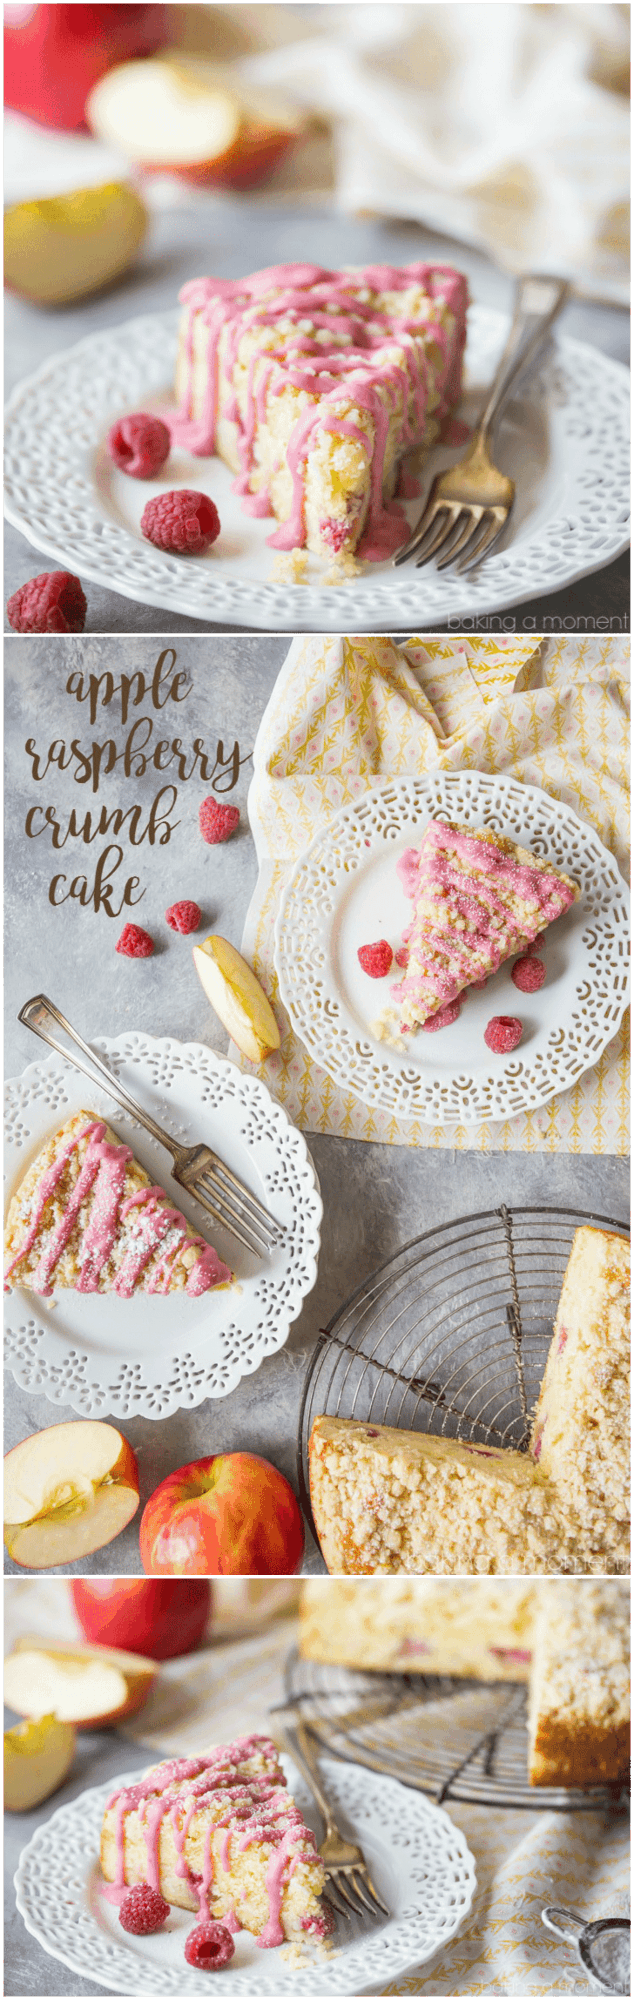 Apple Raspberry Crumb Cake:  perfectly light, moist, and buttery, with a hint of sweetness from the fruit and a lemony crumb topping.  We made this for Mother's Day and it was a big hit!  food desserts breakfast